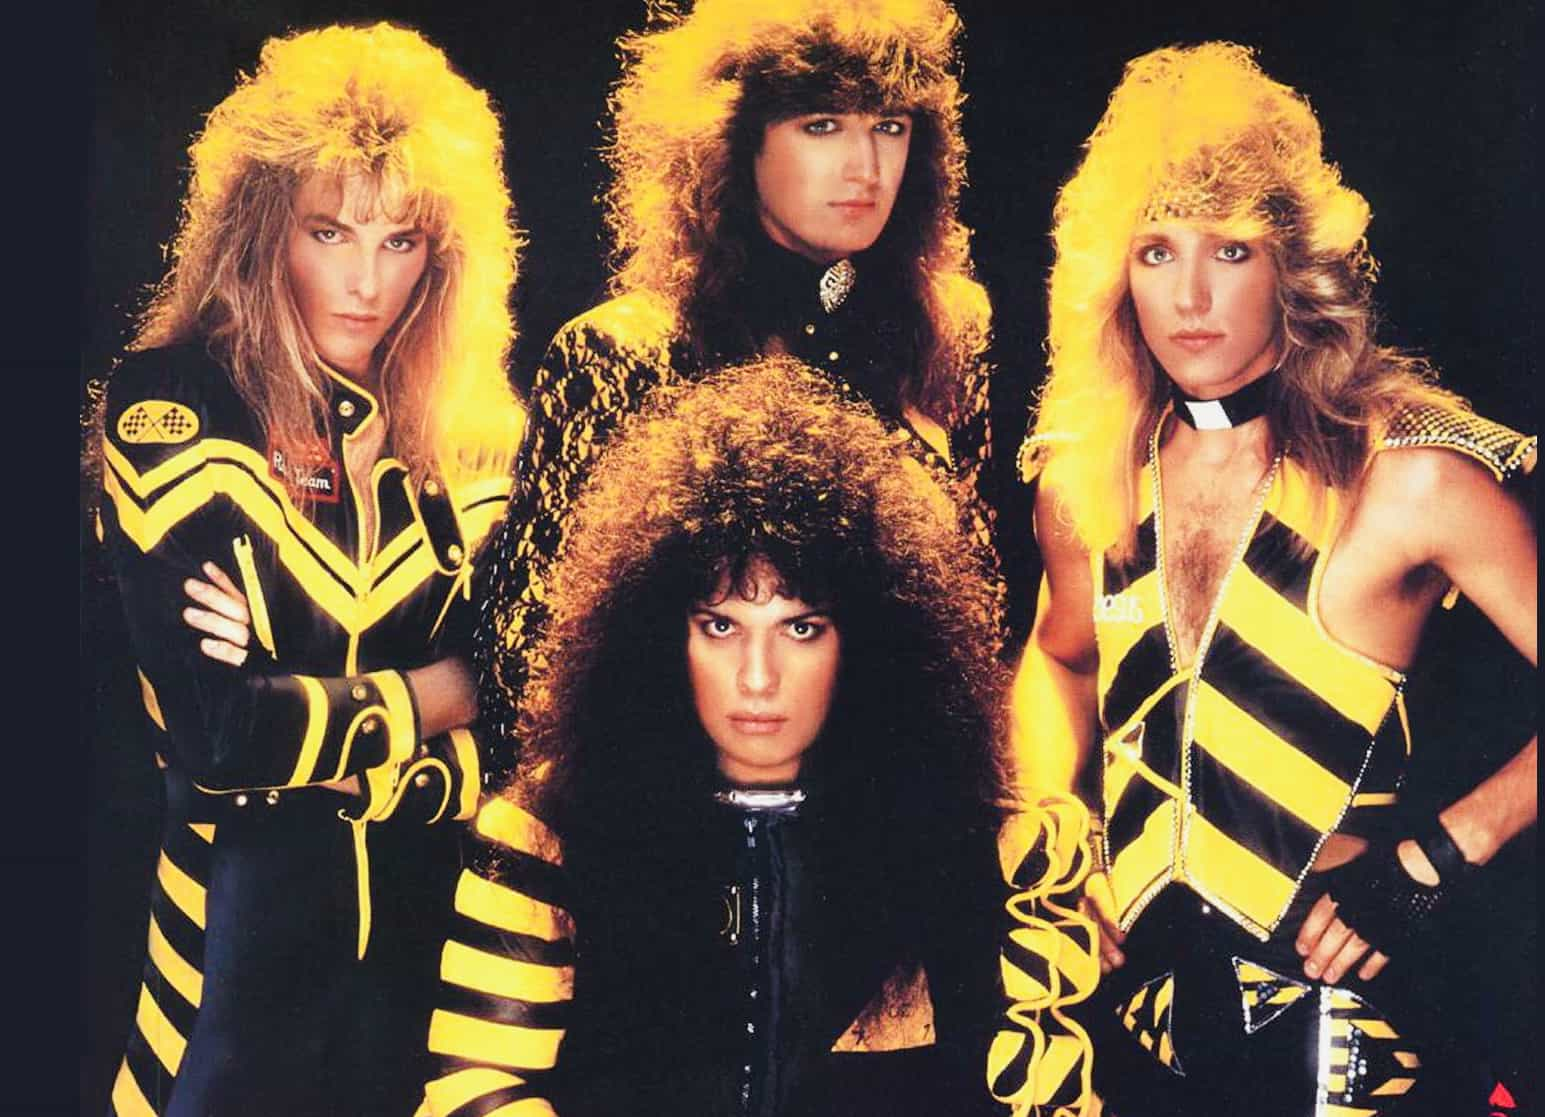 Stryper exemplifying the problem of evil